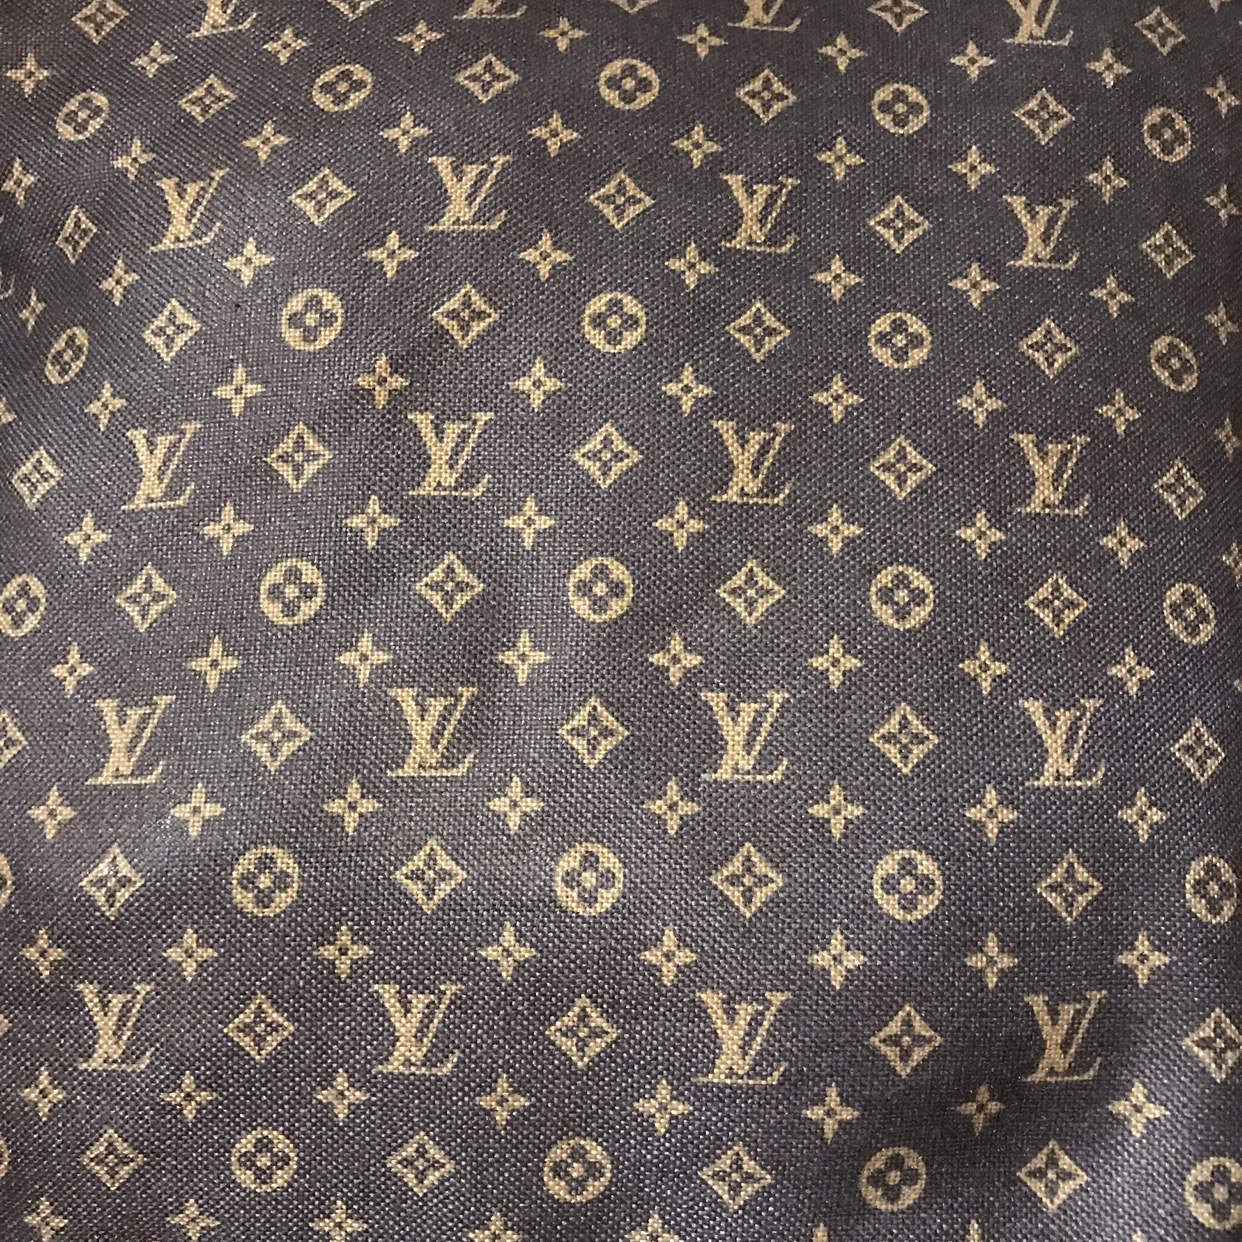 bl louis vuitton pillow case will come with a